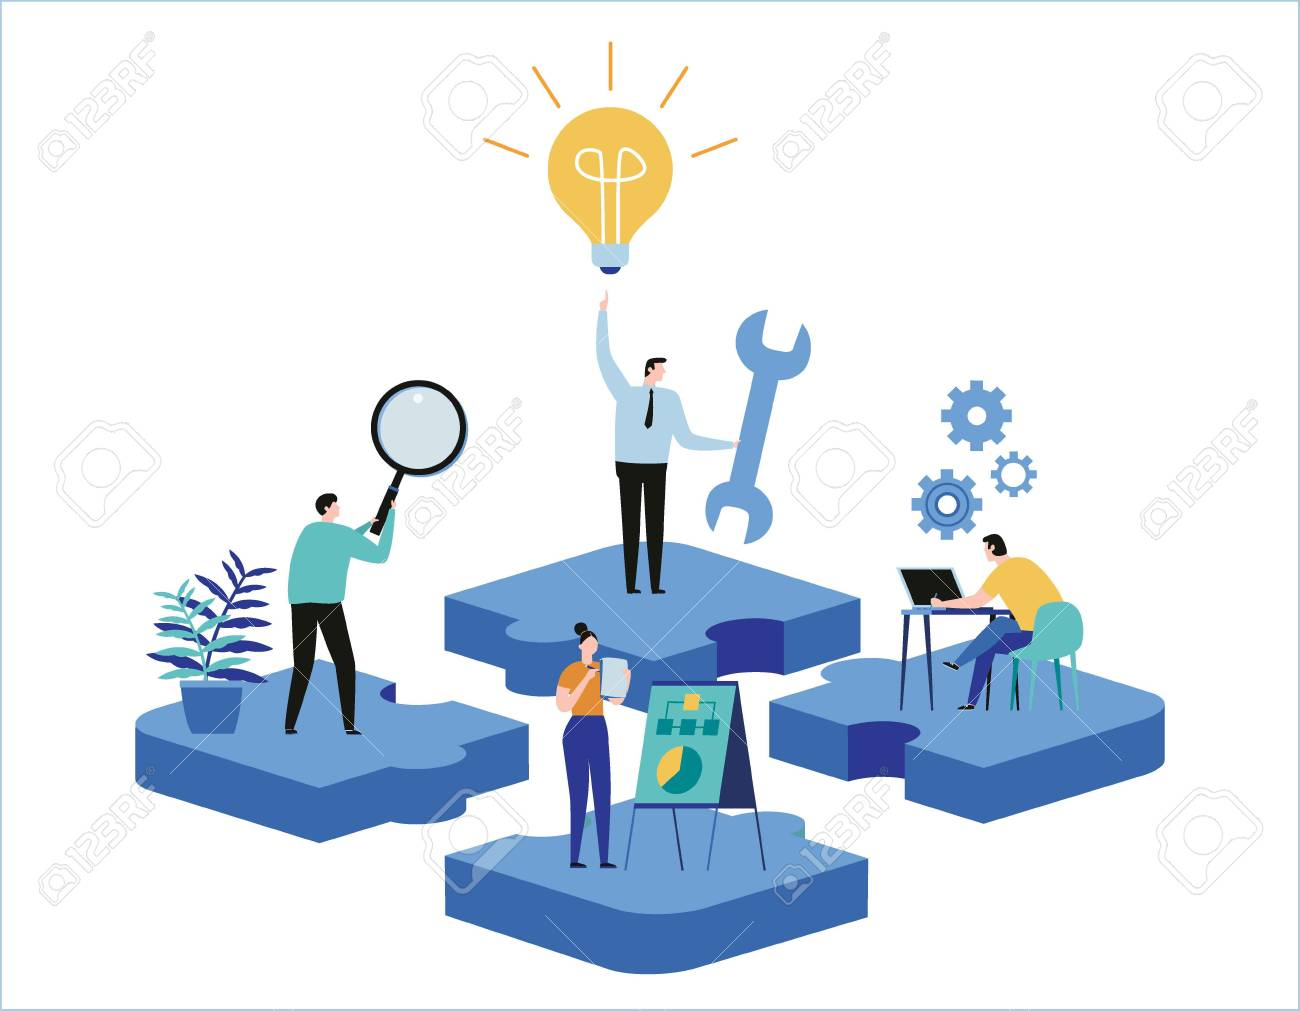 Finding new ideas. problem solving. Vector illustration banner.Teamwork search for solutionsMiniature people team workingflat cartoon design for web mobile - 101656860